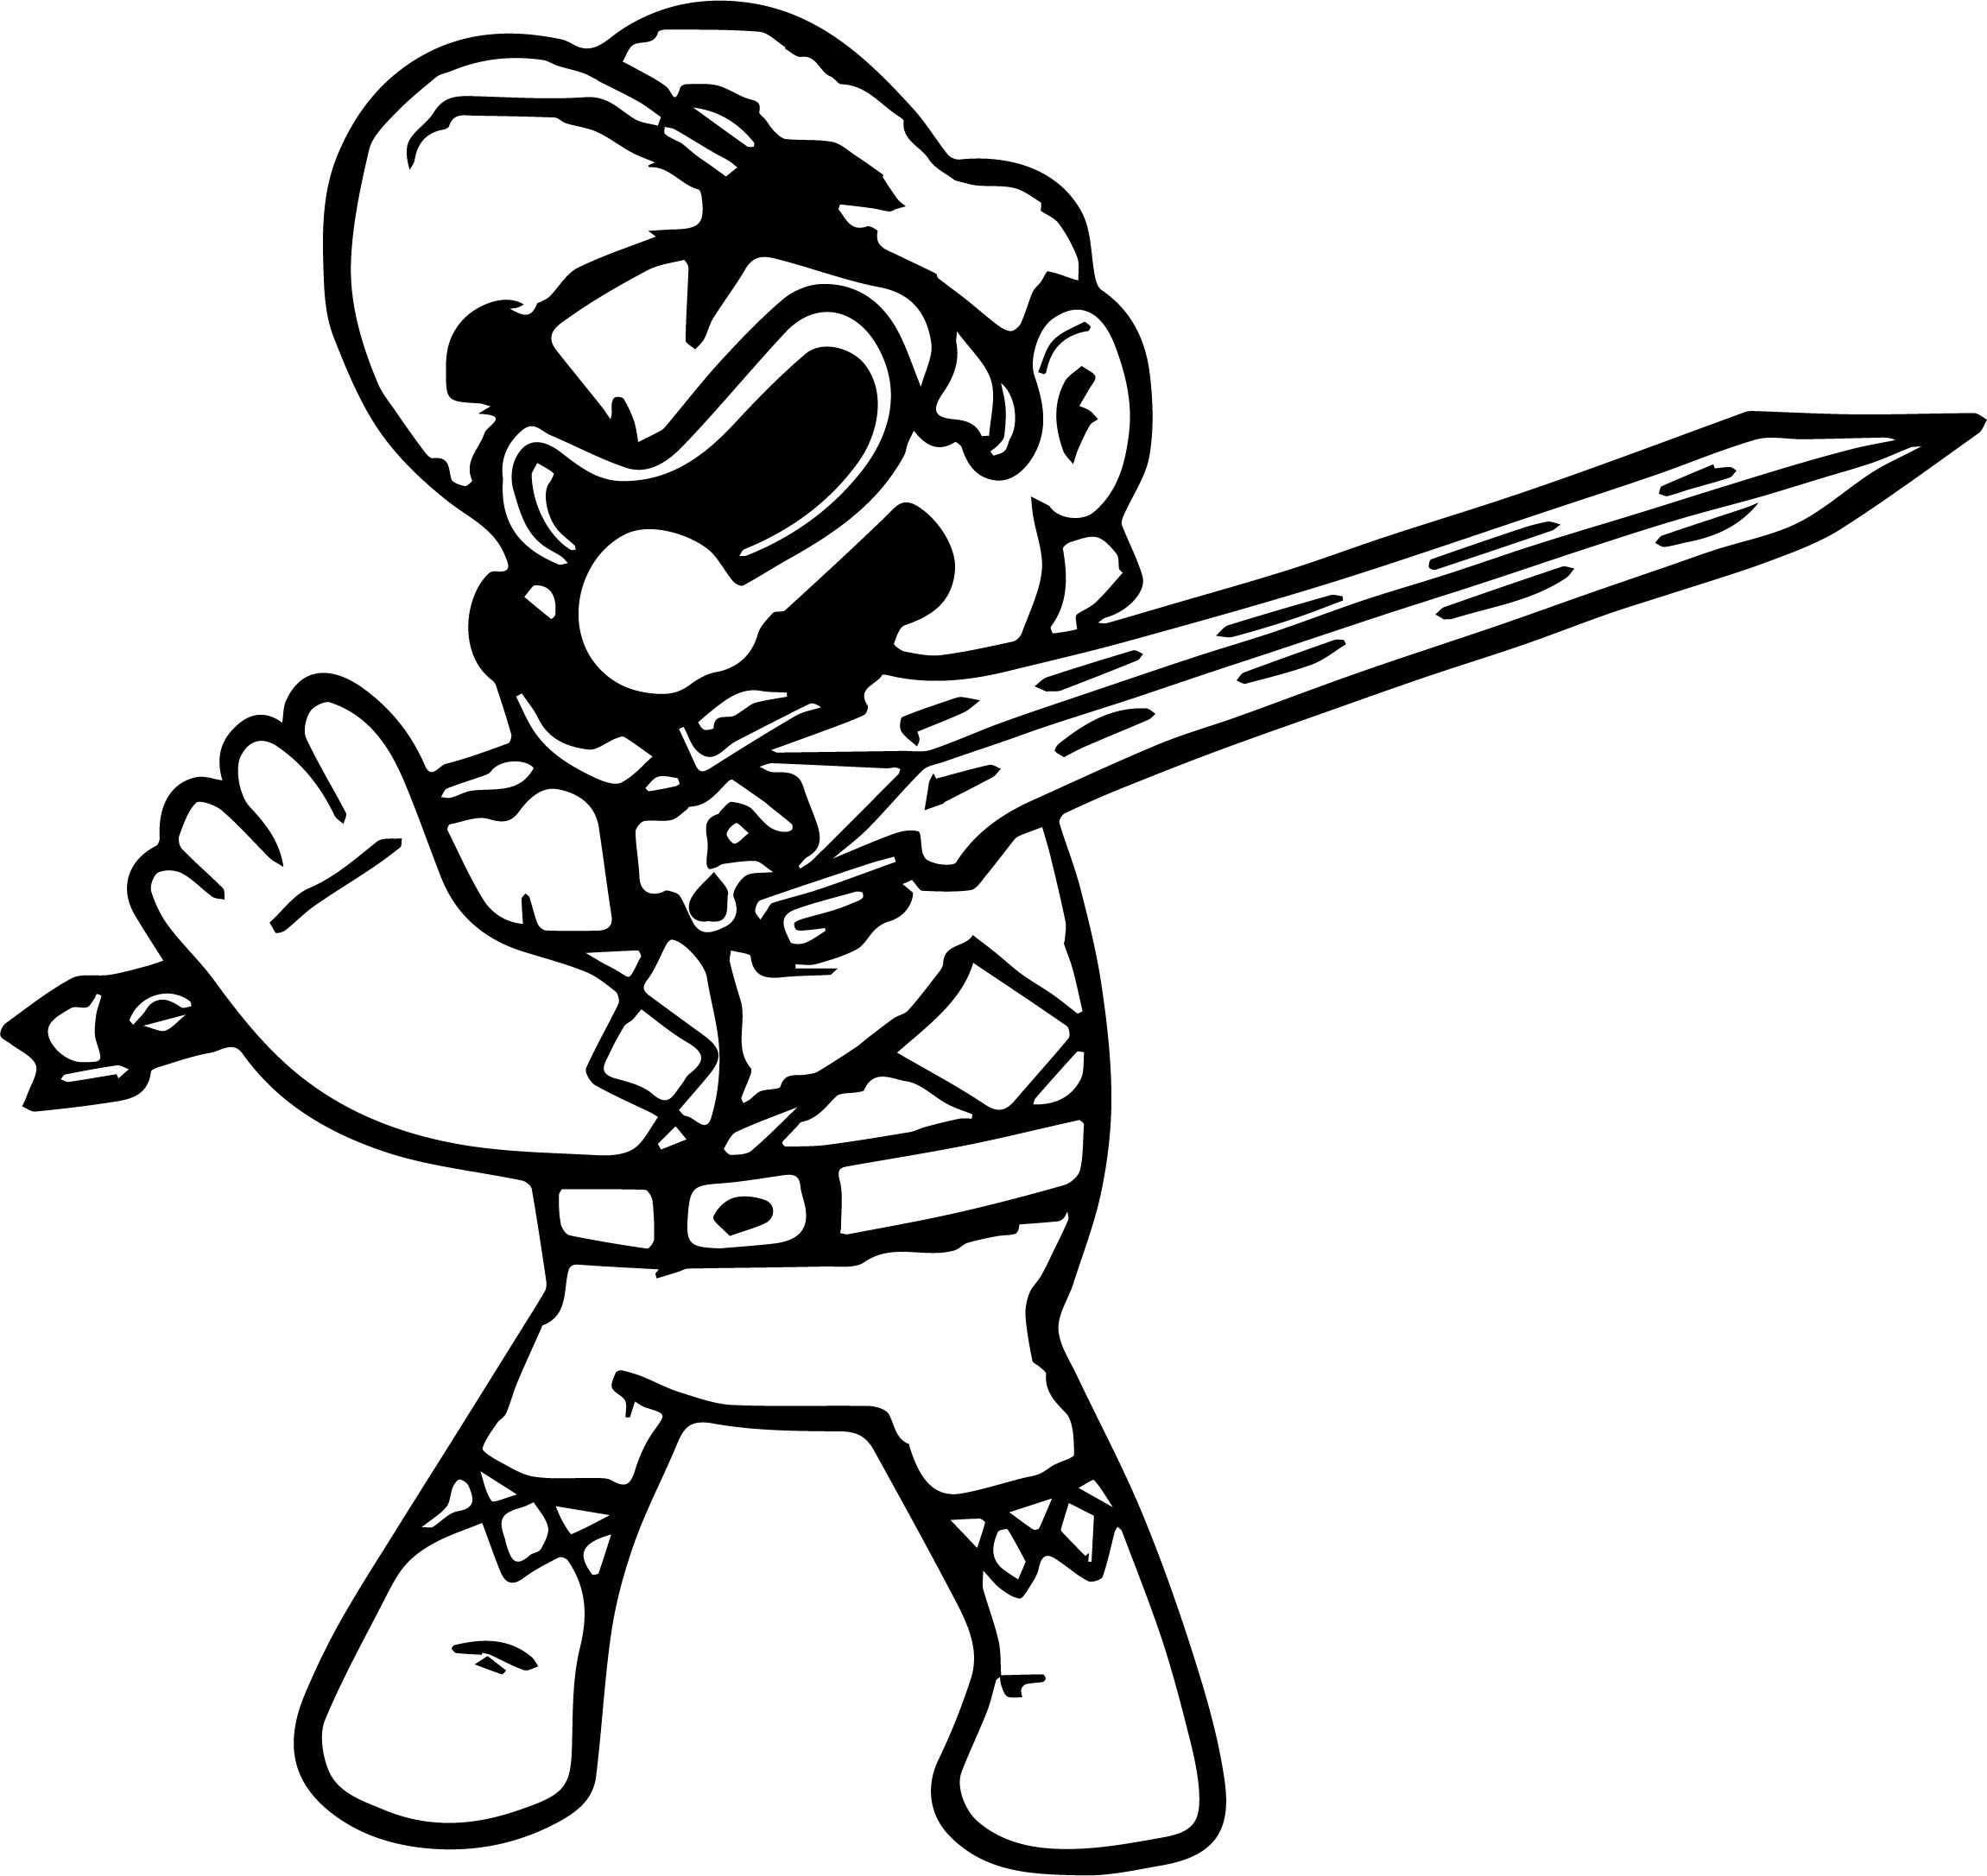 cool Power Rangers Super Mario Coloring Page (With images